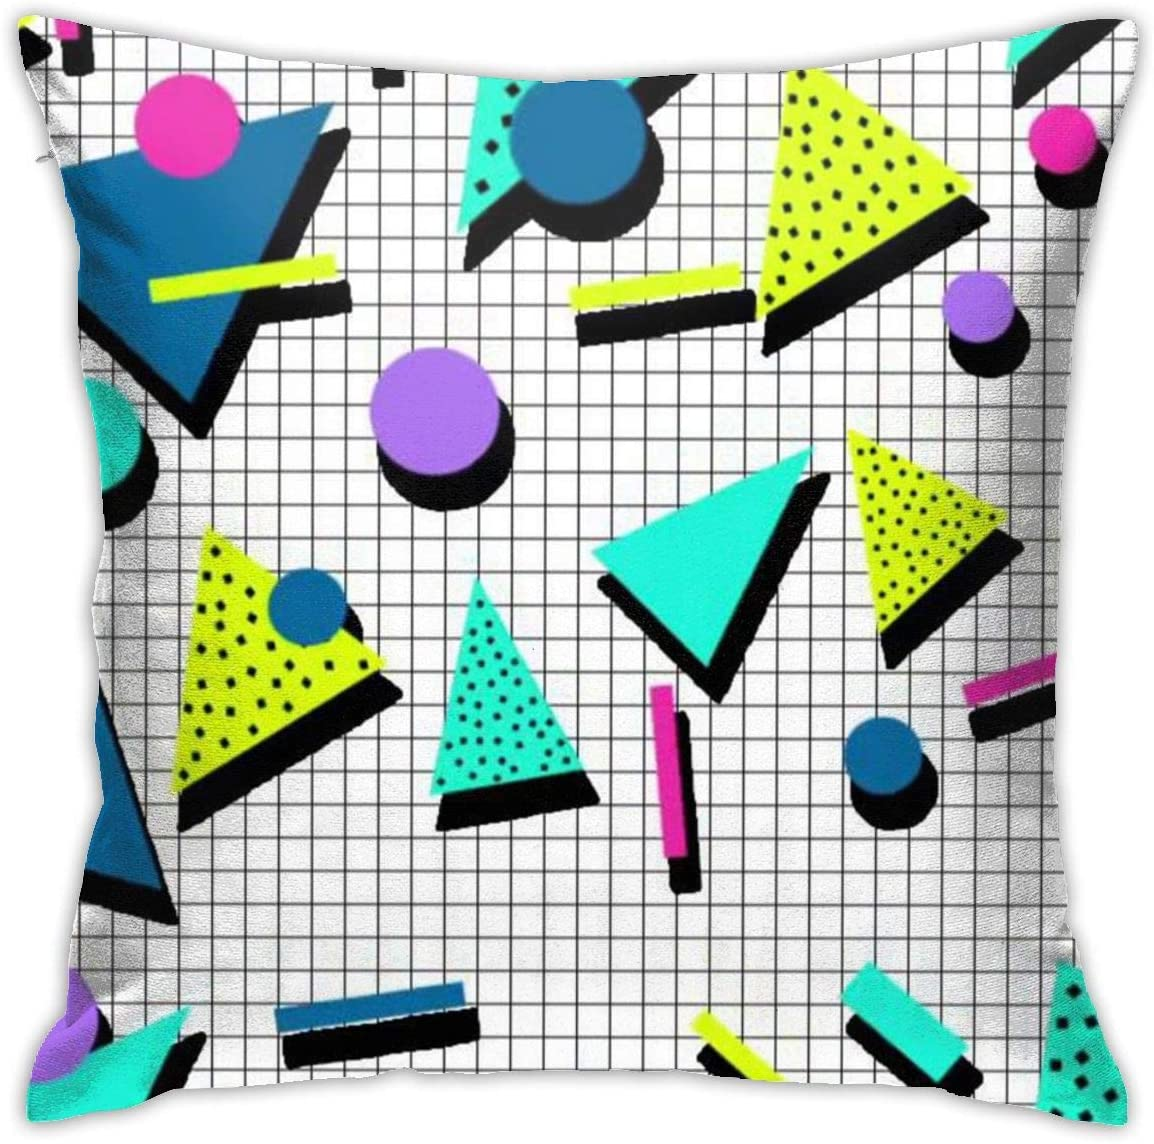 antkondnm 80s Pattern Throw Pillow Cover Pillow Case Square Cushion Cover for Sofa Couch Home Car Bedroom Living Room 18 x 18